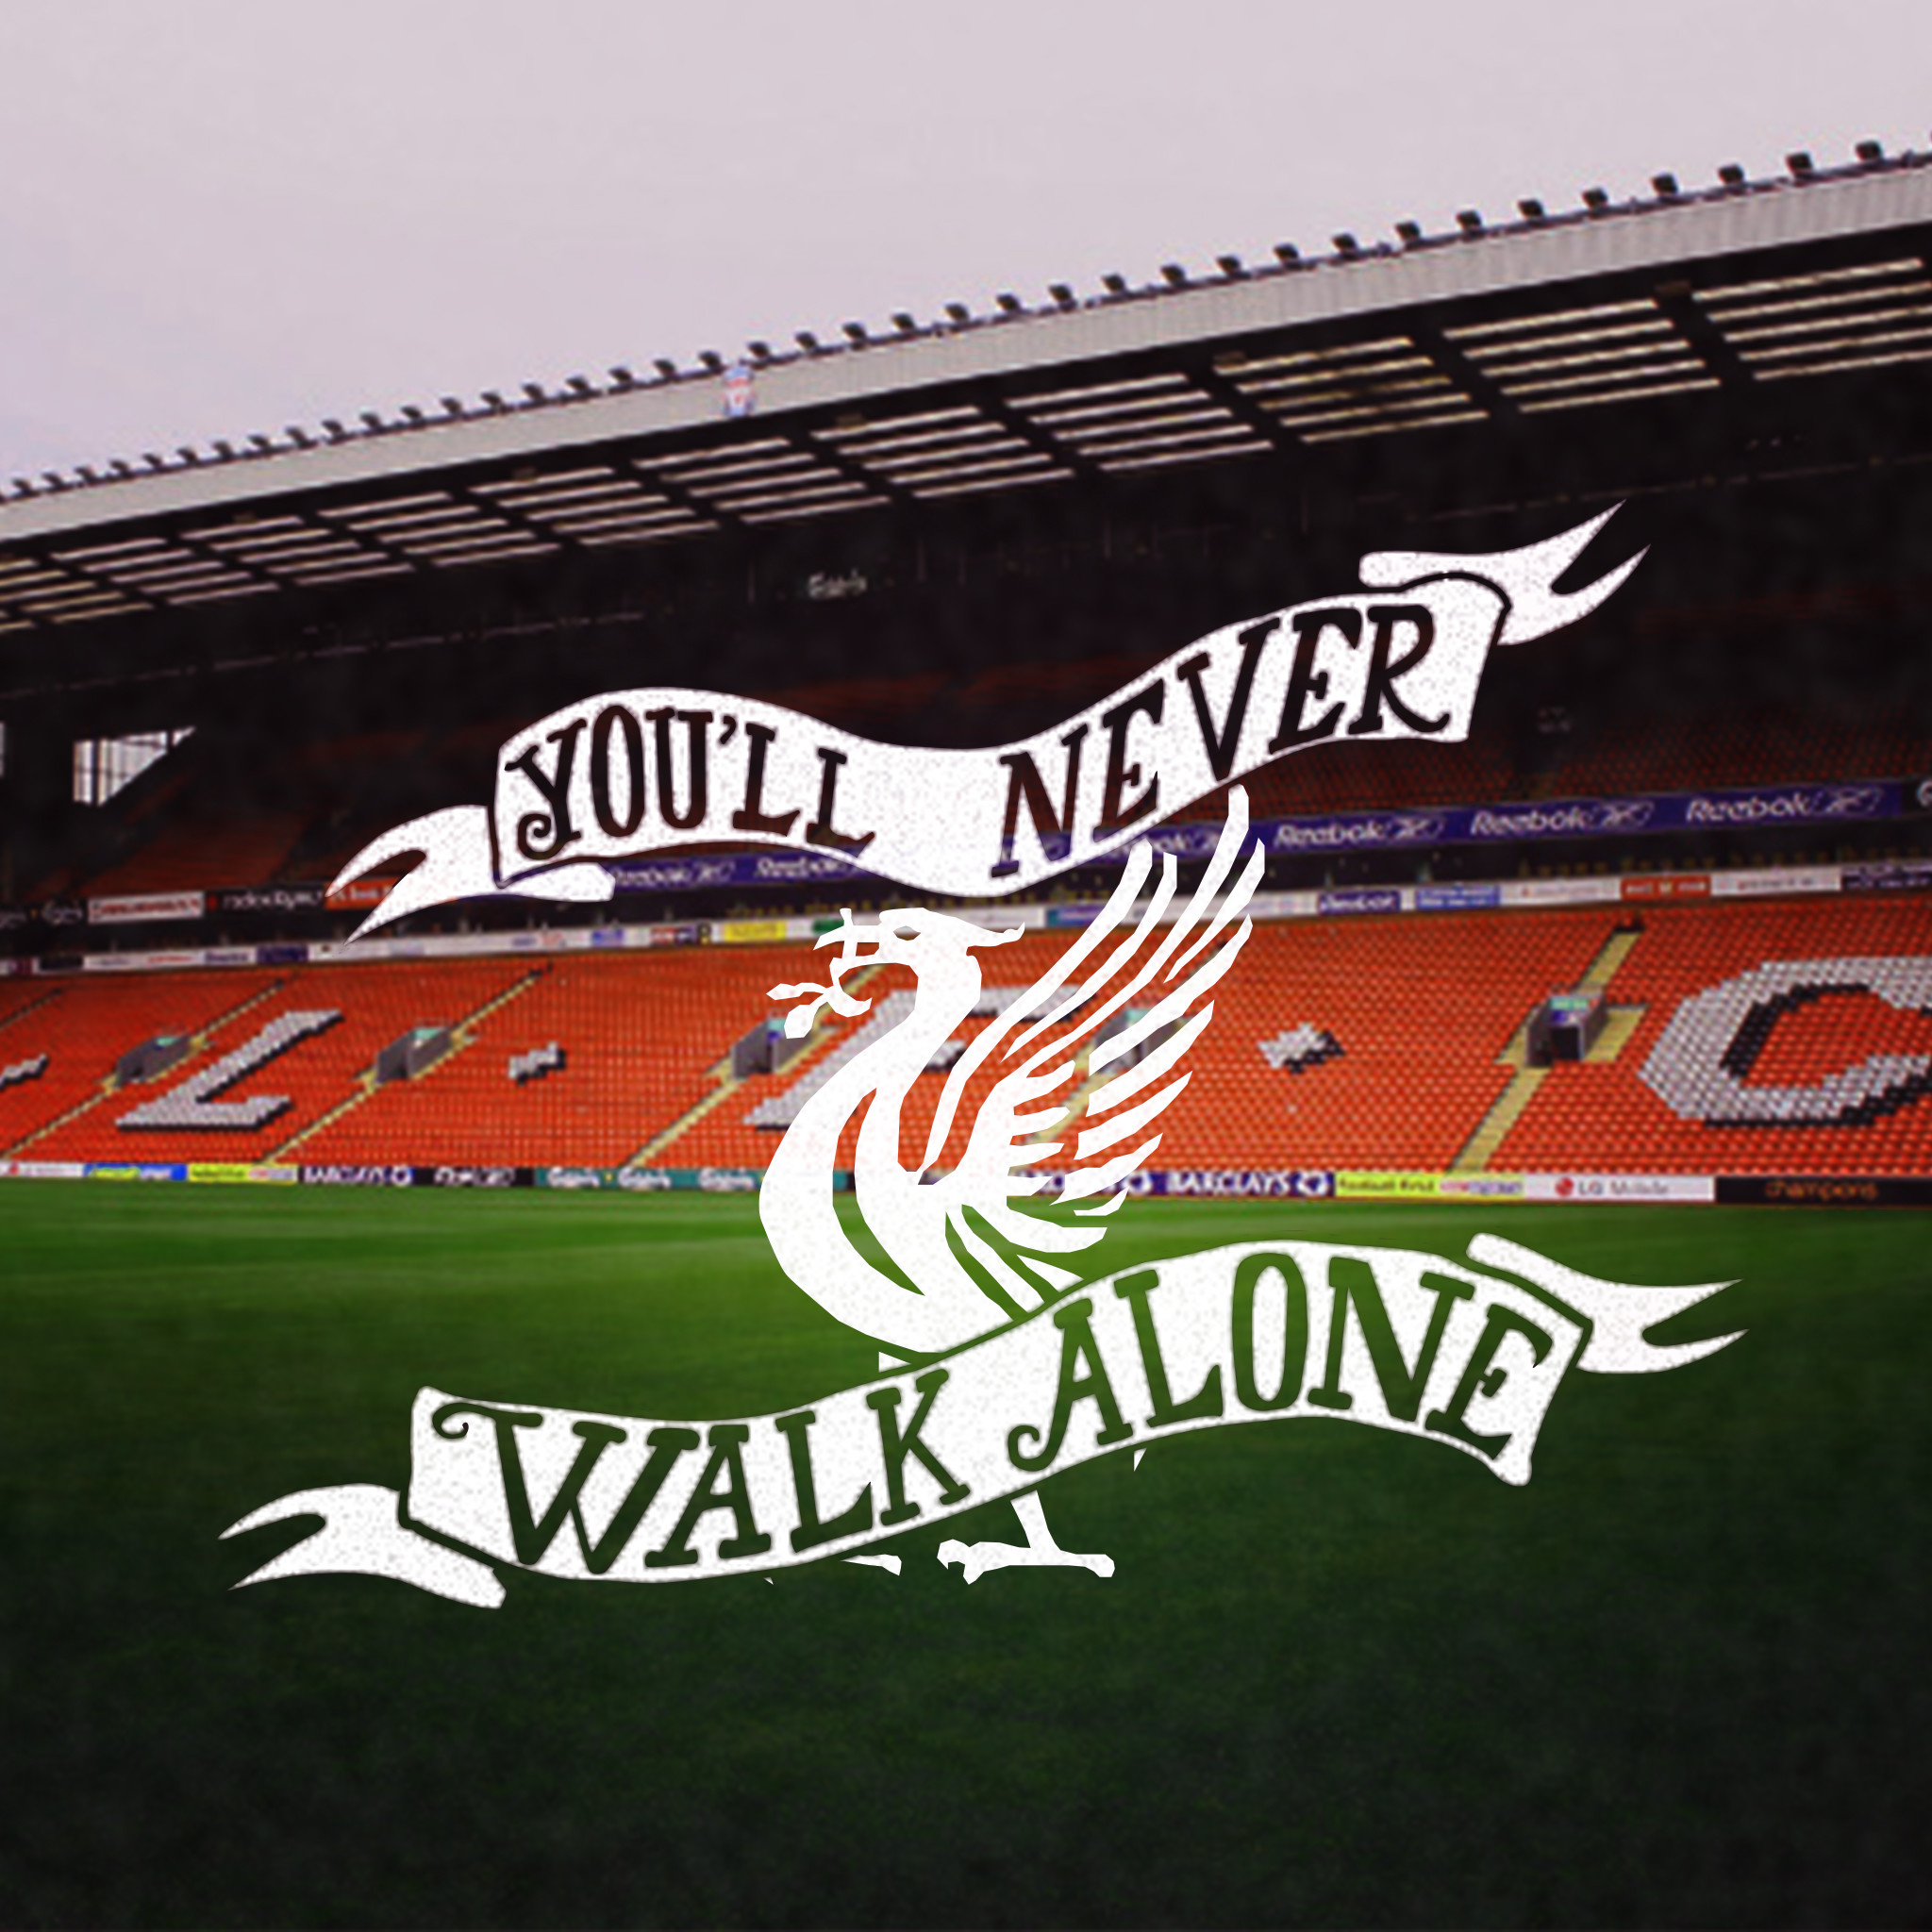 Liverpool Wallpaper: Ynwa Wallpapers (72+ Images